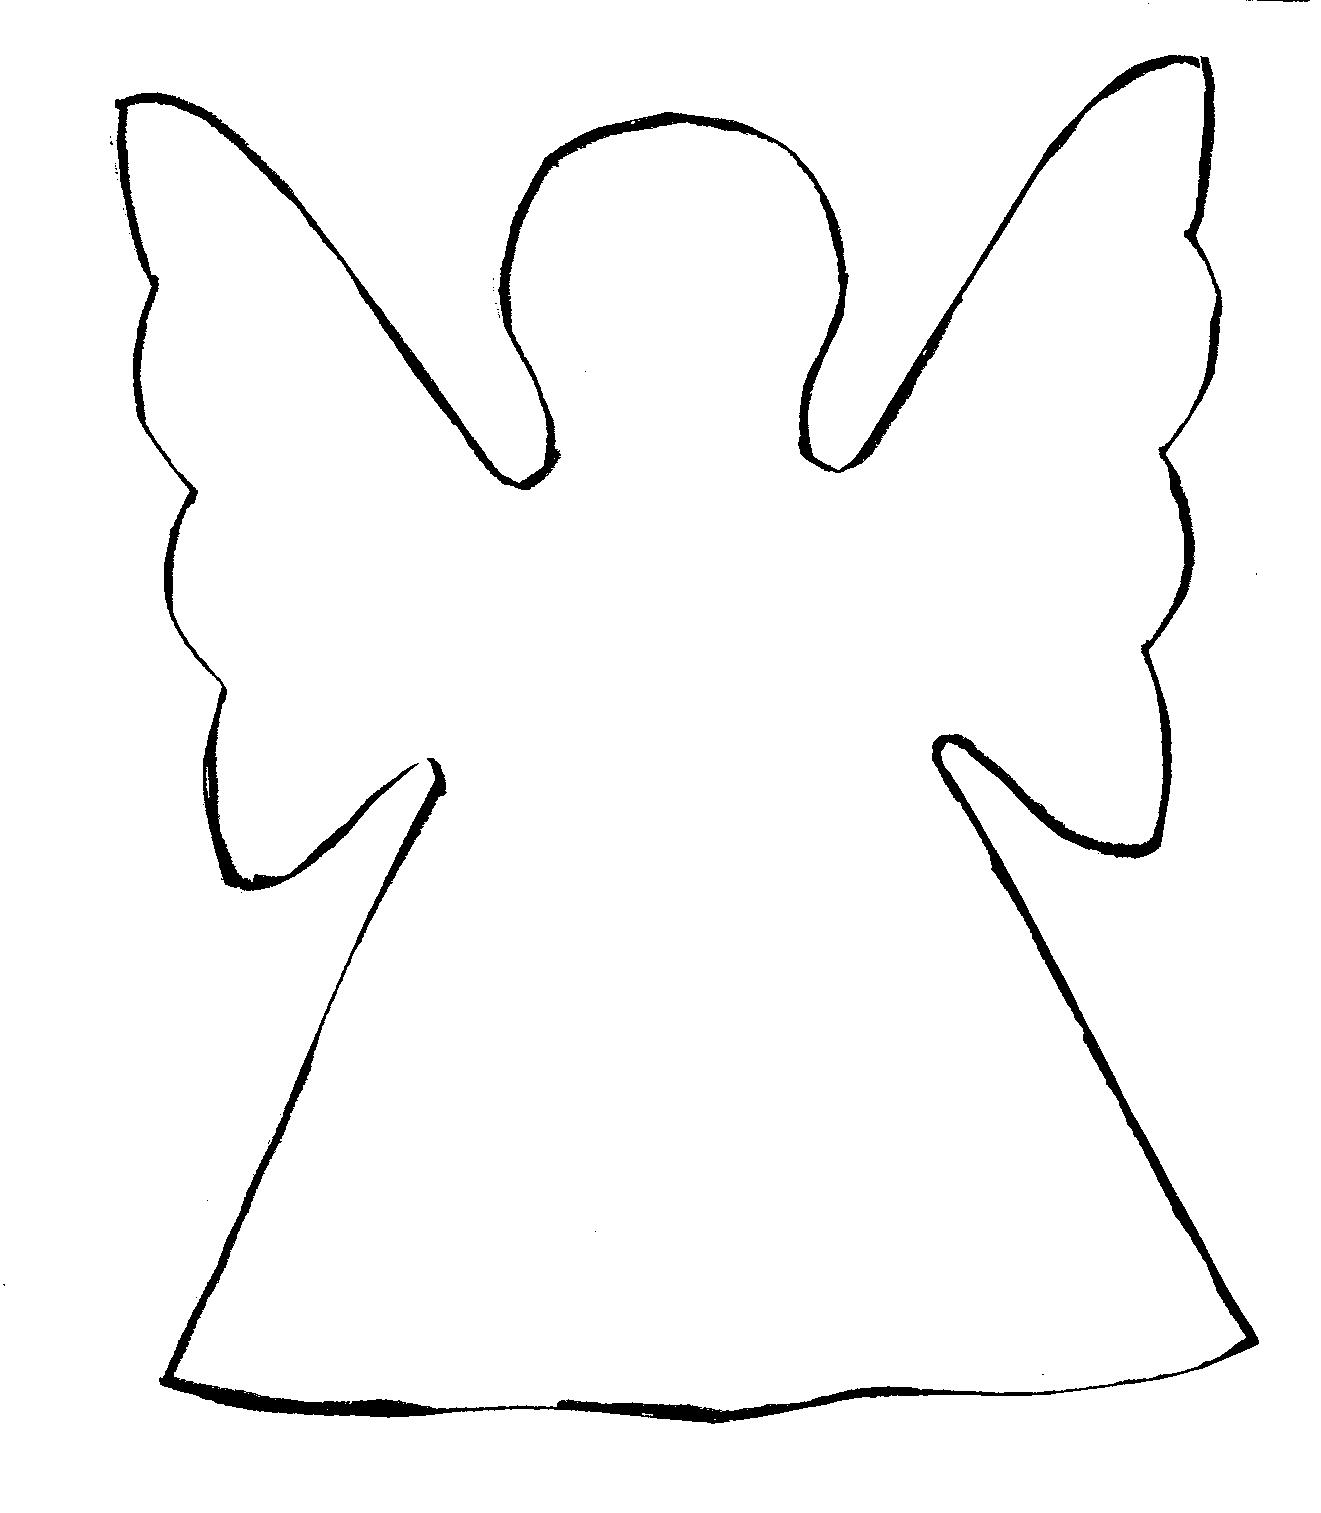 Rasberry angel shape template.. - Rasberry